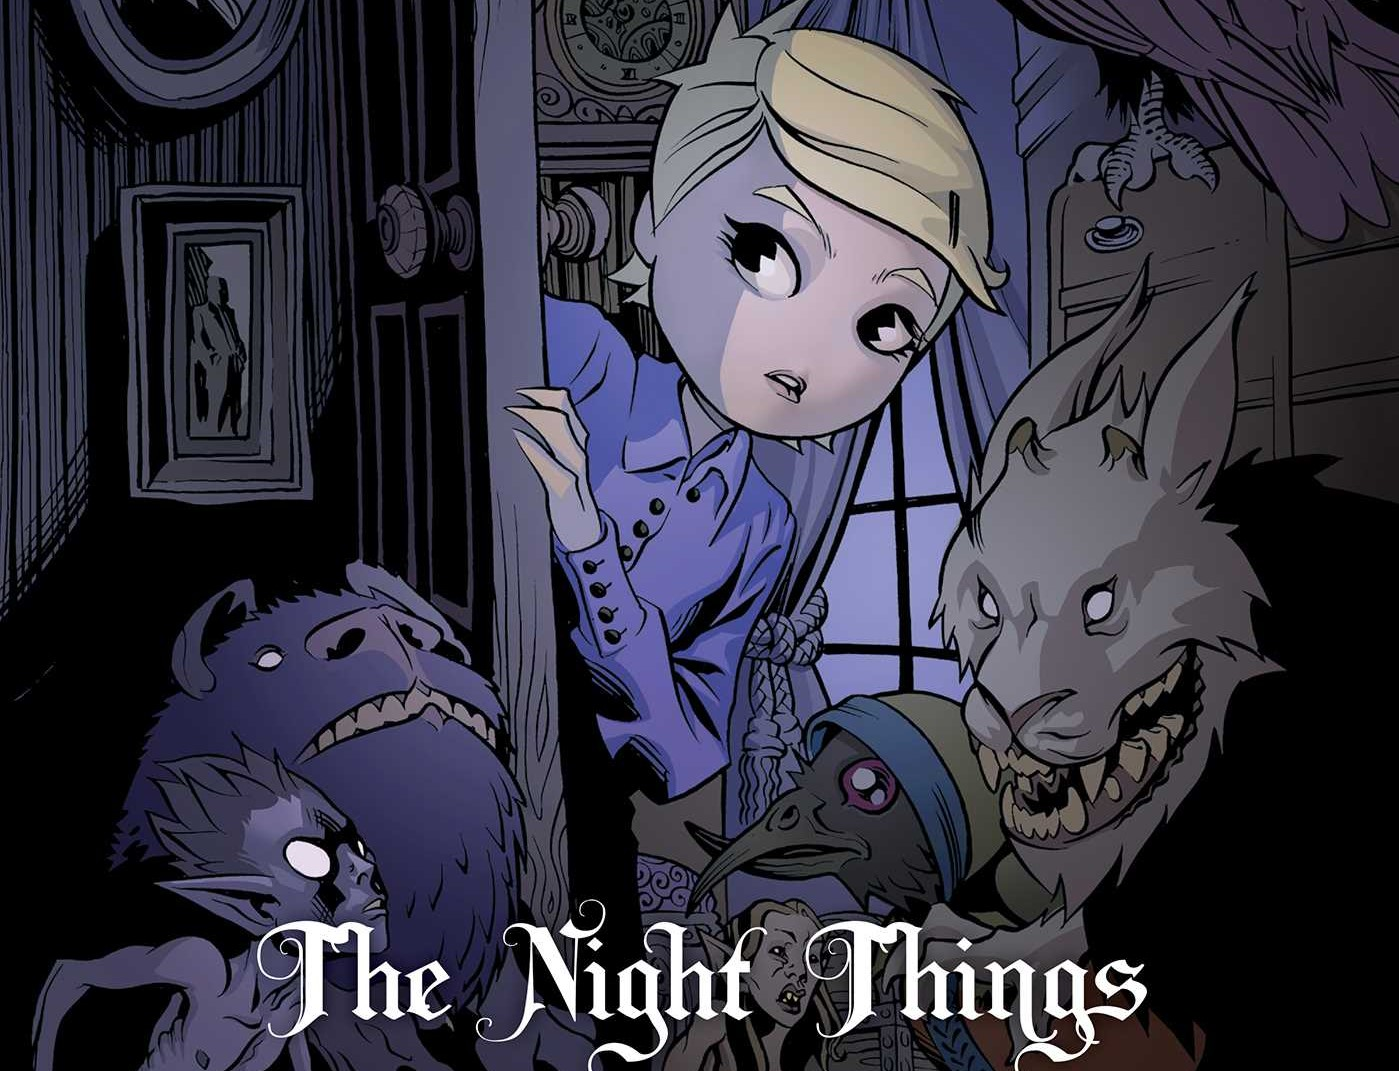 Courtney Crumrin and the Night Things comic books